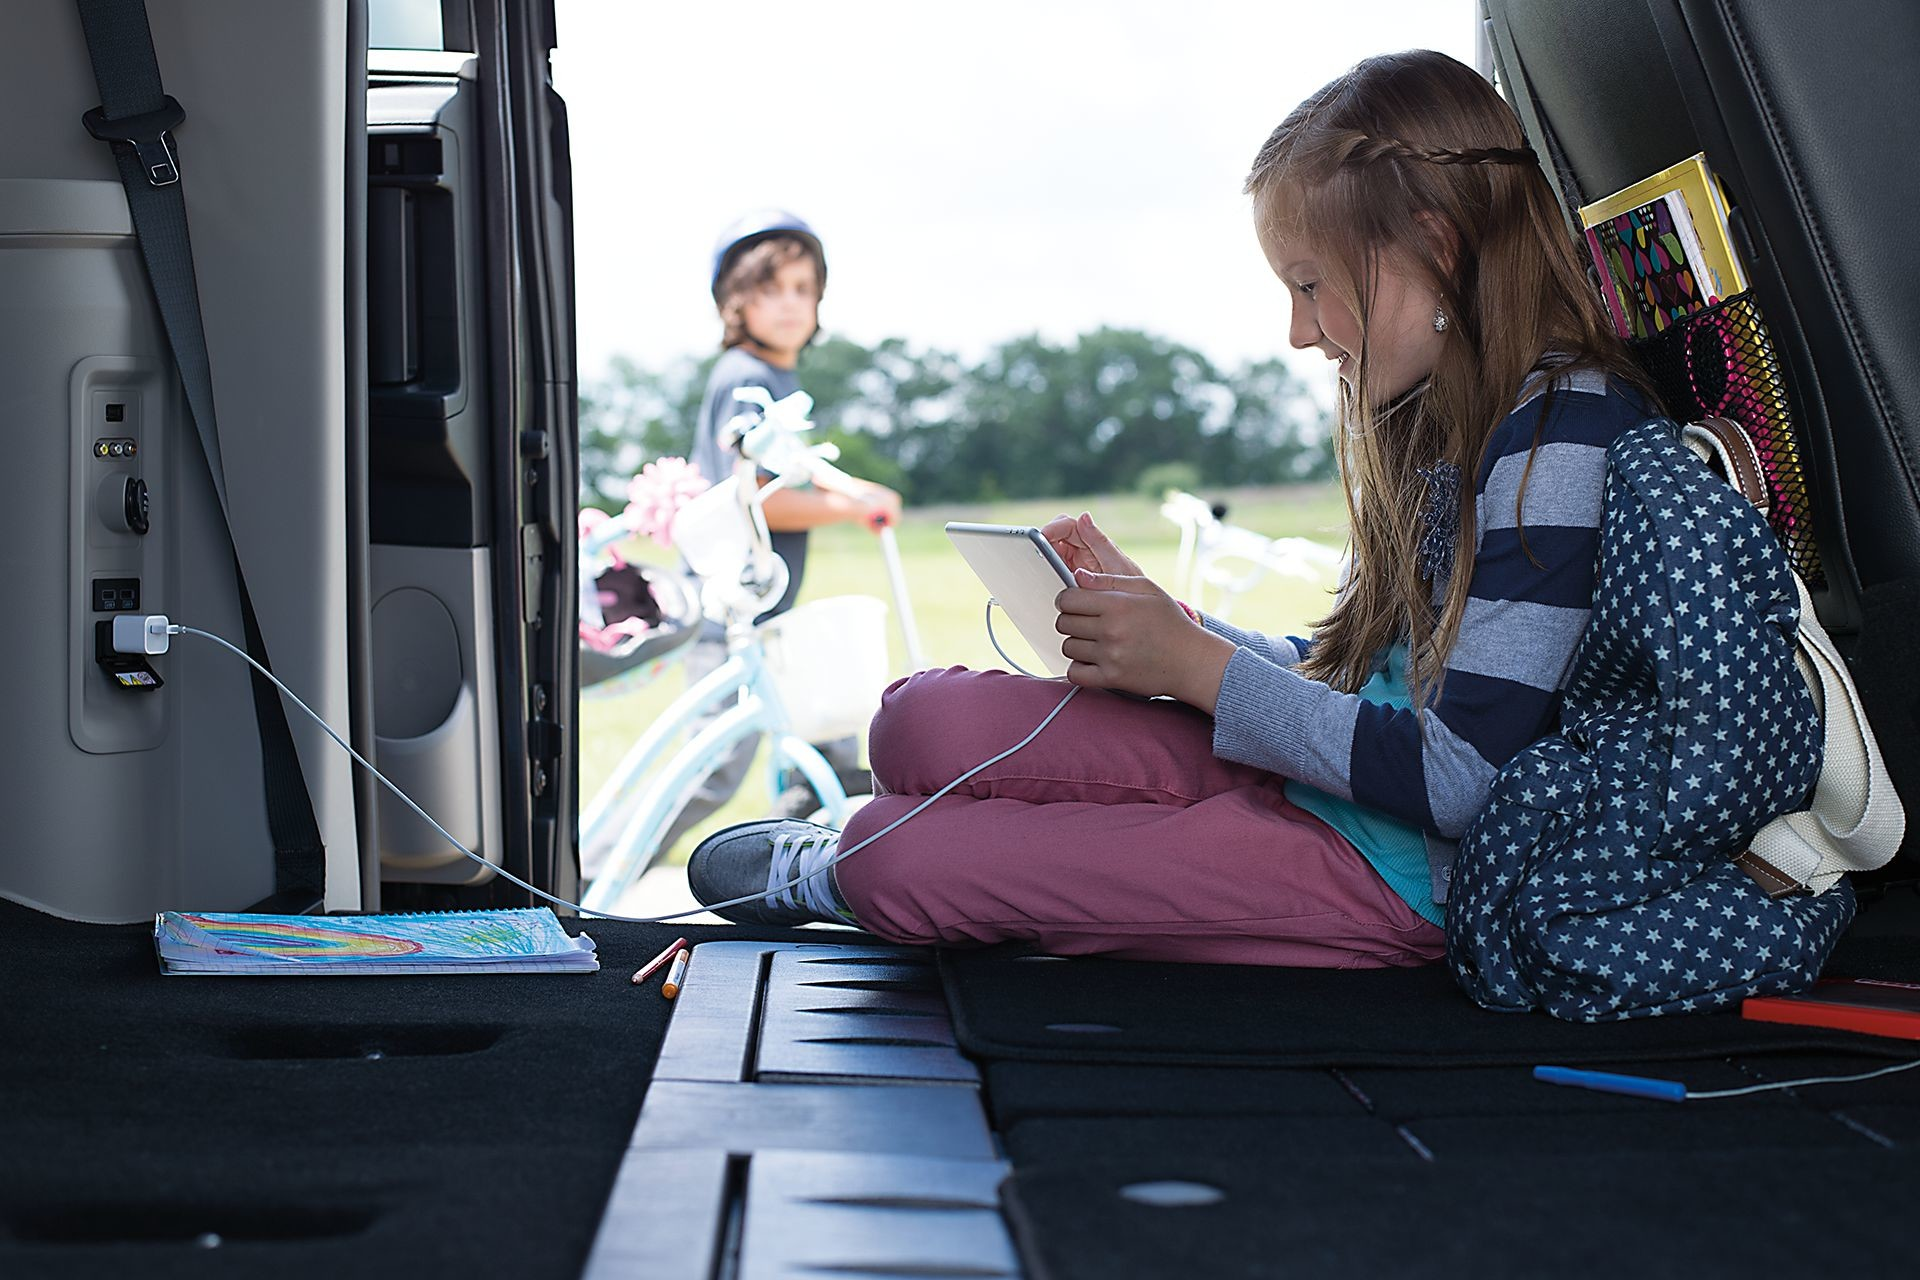 2019 Dodge Grand Caravan interior view of child charging a device